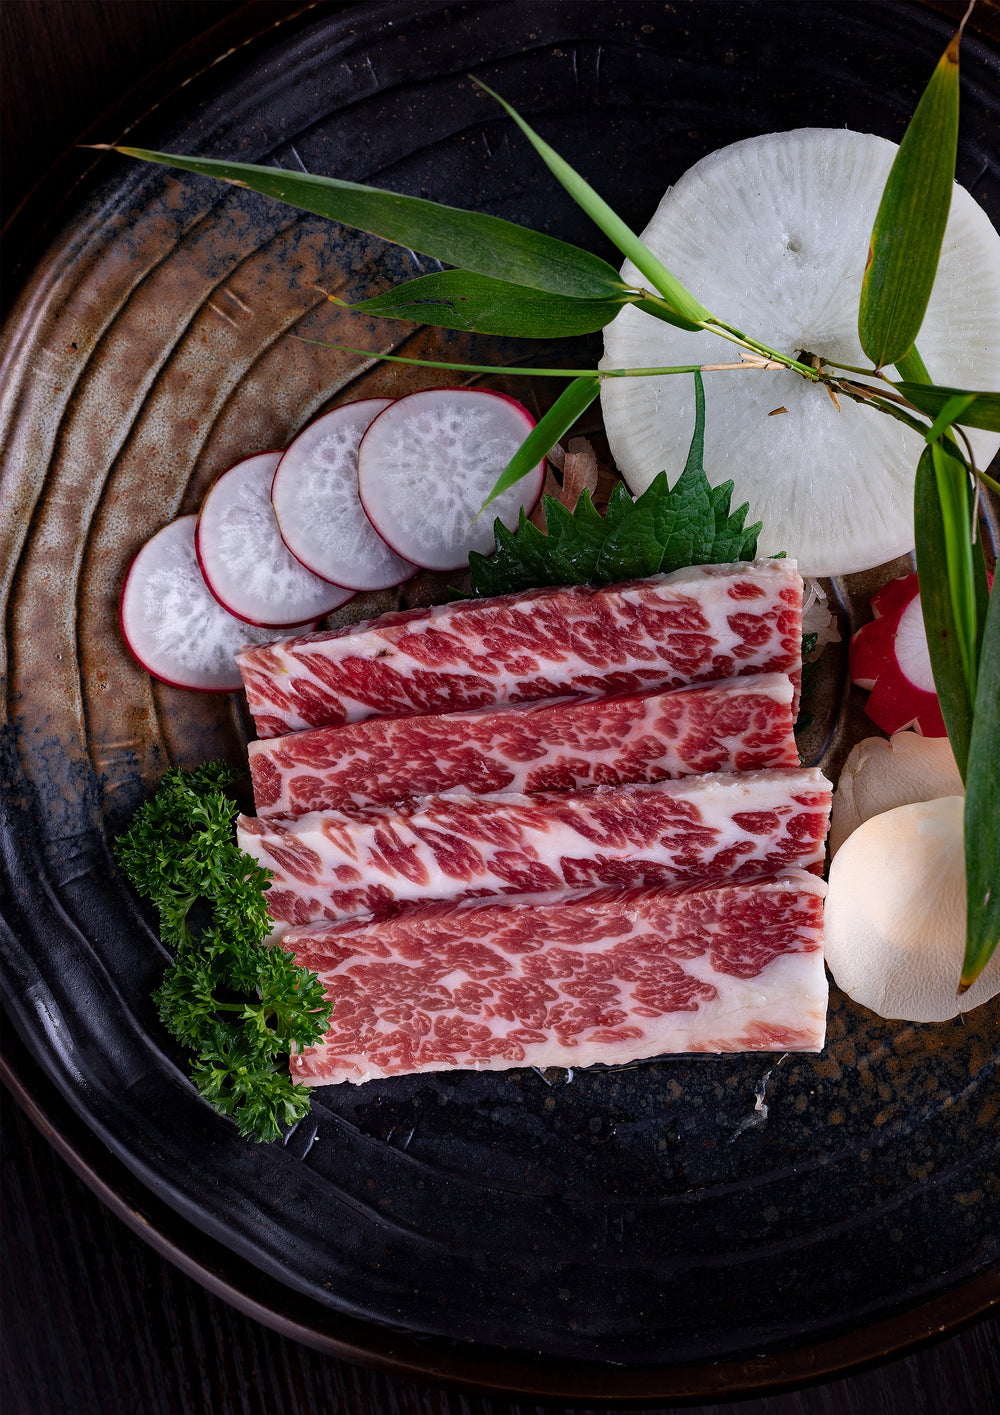 Japanese Wagyu Beef | Grass Finished Beef | Akaushi Beef | Beef Fillets | Grass Fed Beef